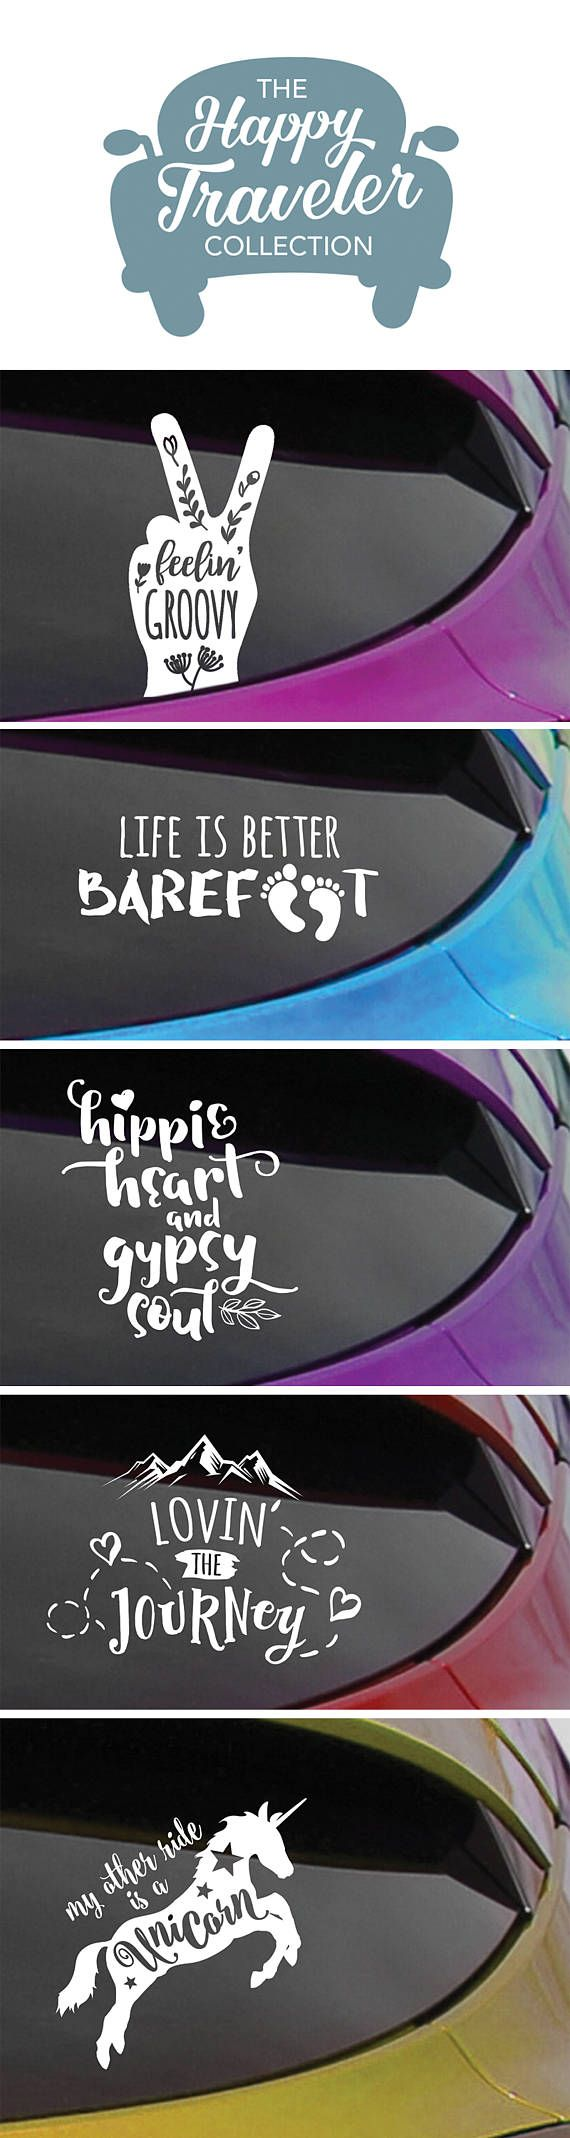 From The Happy Traveler Collection Hippie Decals For Car Windows Or Anything With A Smooth Hard Surface Hippie Decals Cricut Crafts Silhouette Cameo Projects [ 2138 x 570 Pixel ]